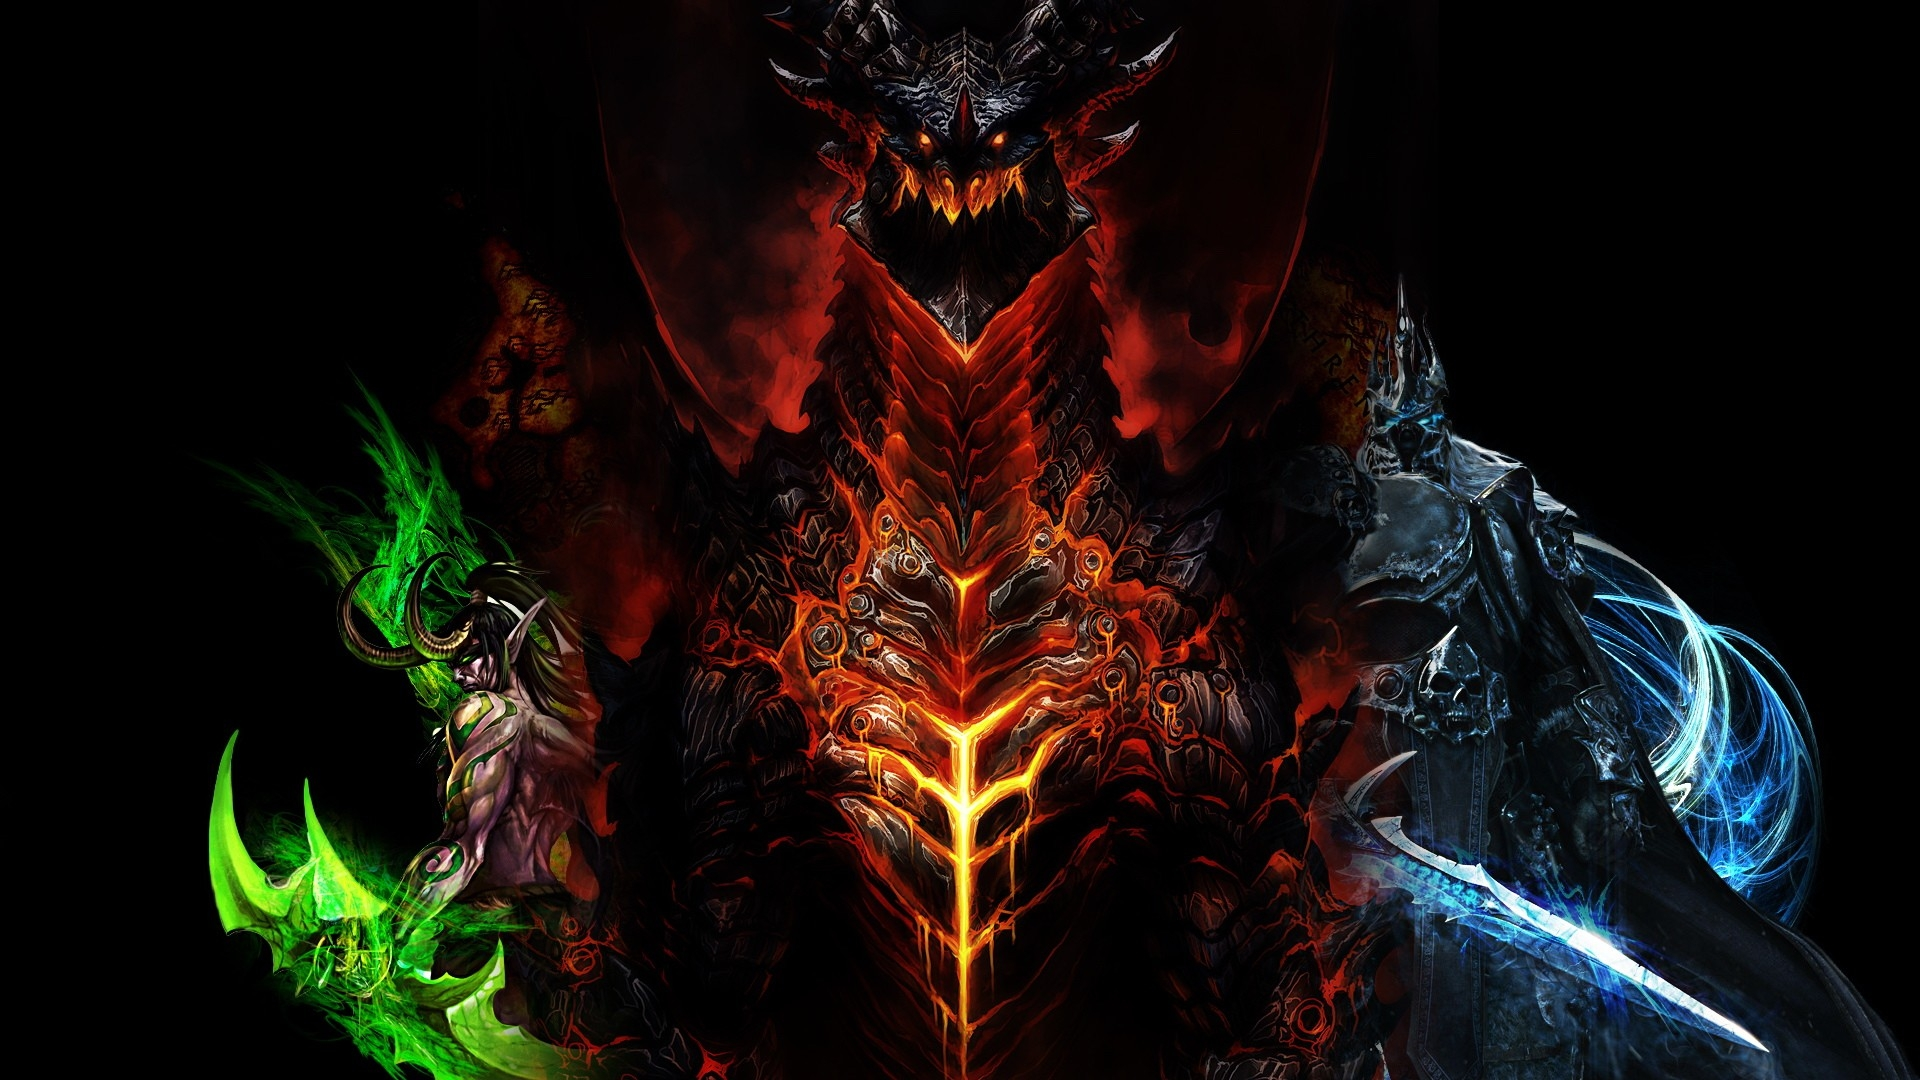 download wallpaper 1920x1080 world of warcraft, dragon, characters